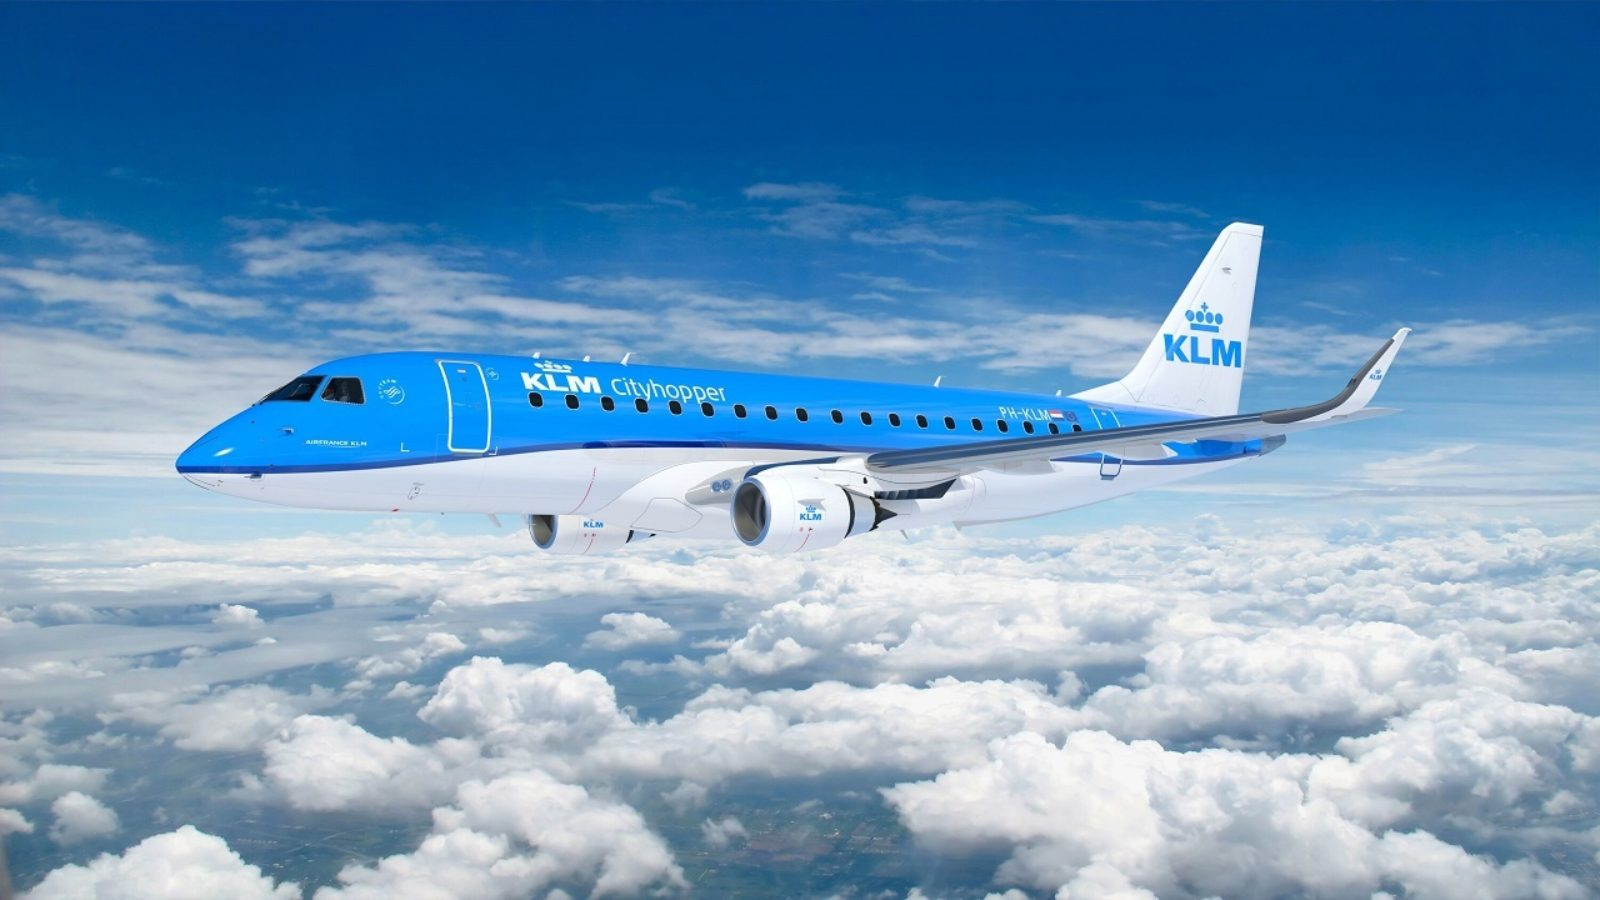 KLM increases flights from Aberdeen International Airport to Amsterdam Schiphol